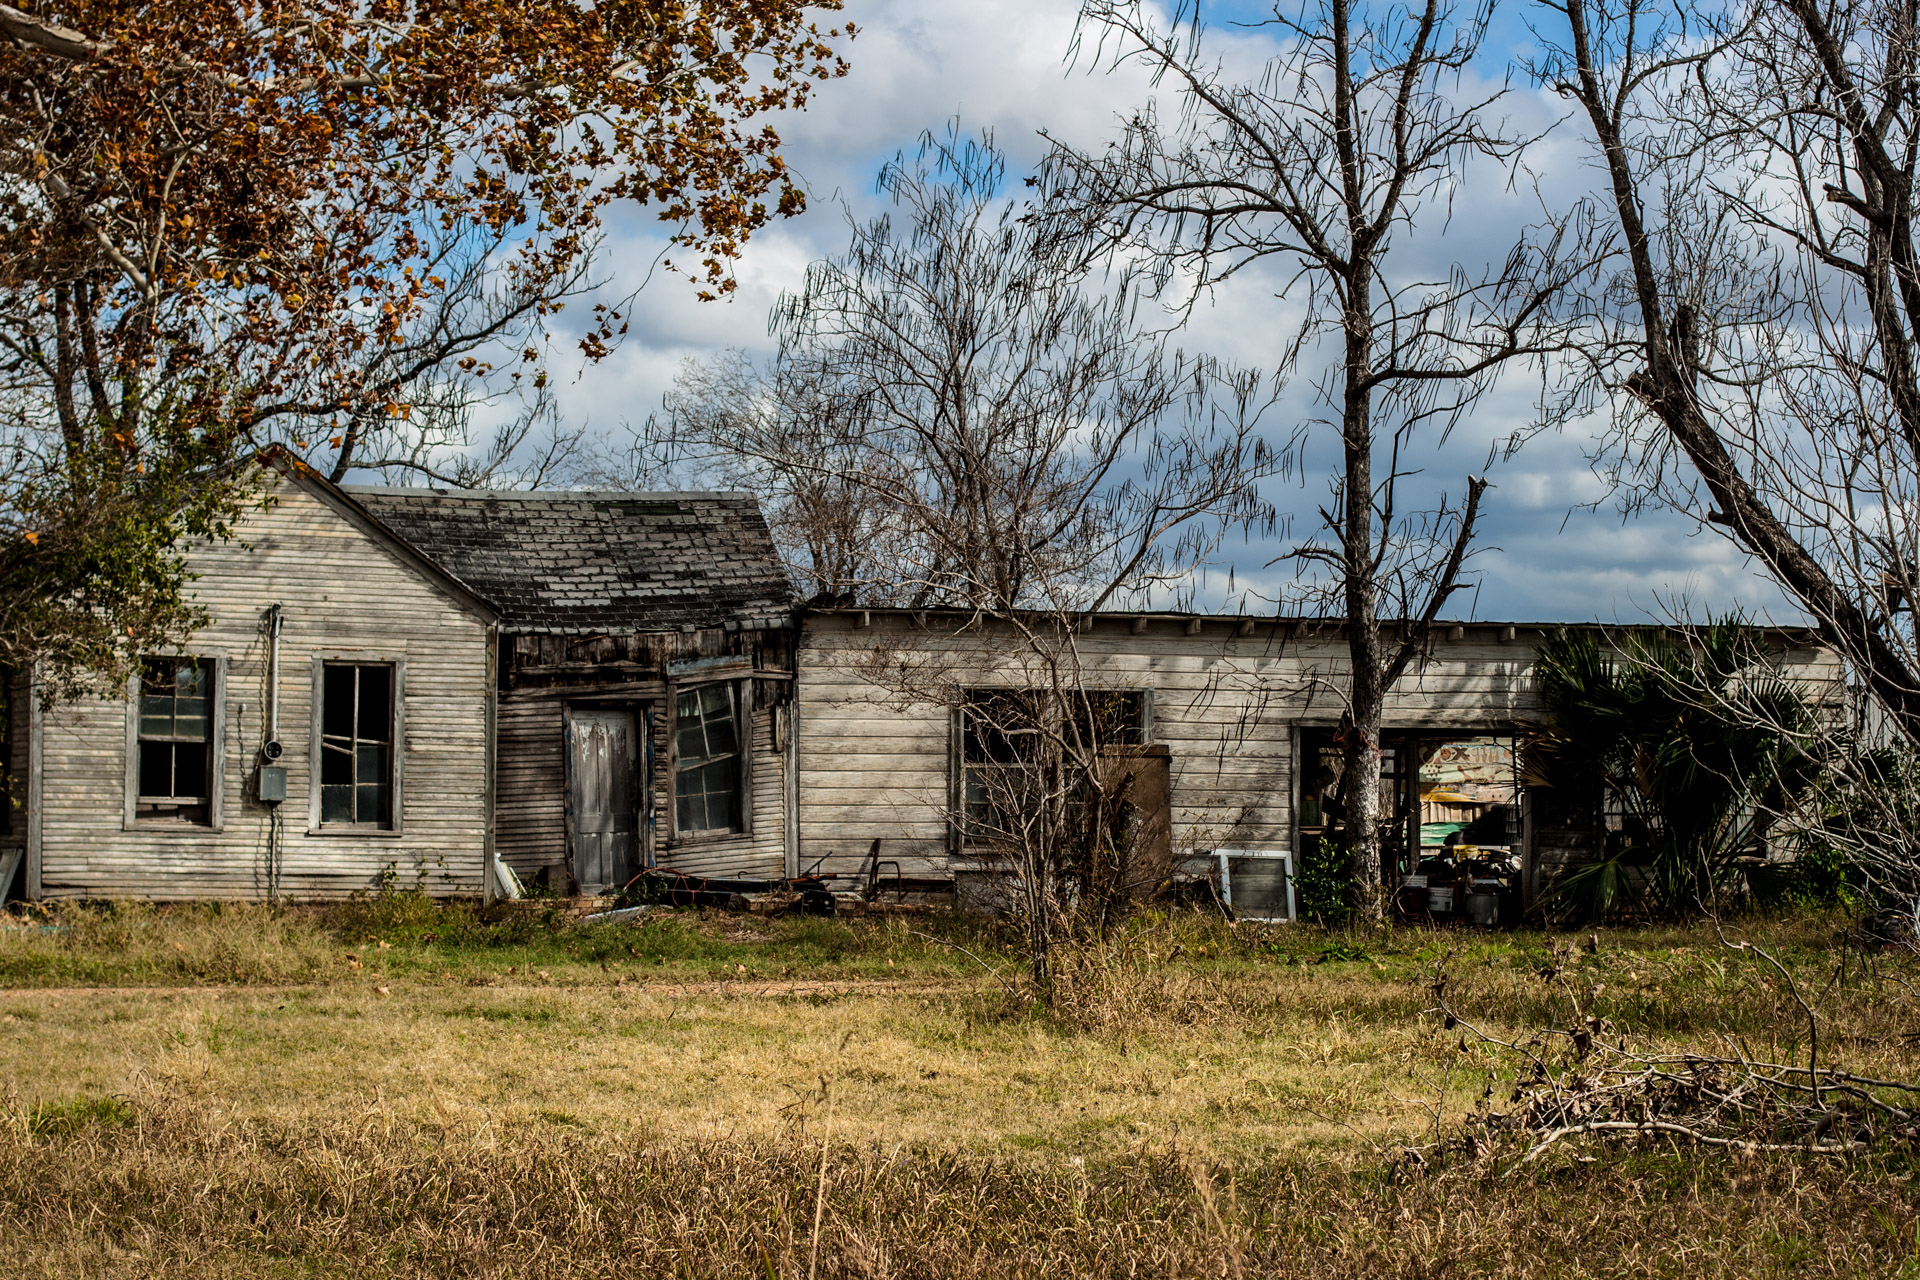 Smithville, Texas - The Sagging Middle House (front mid)